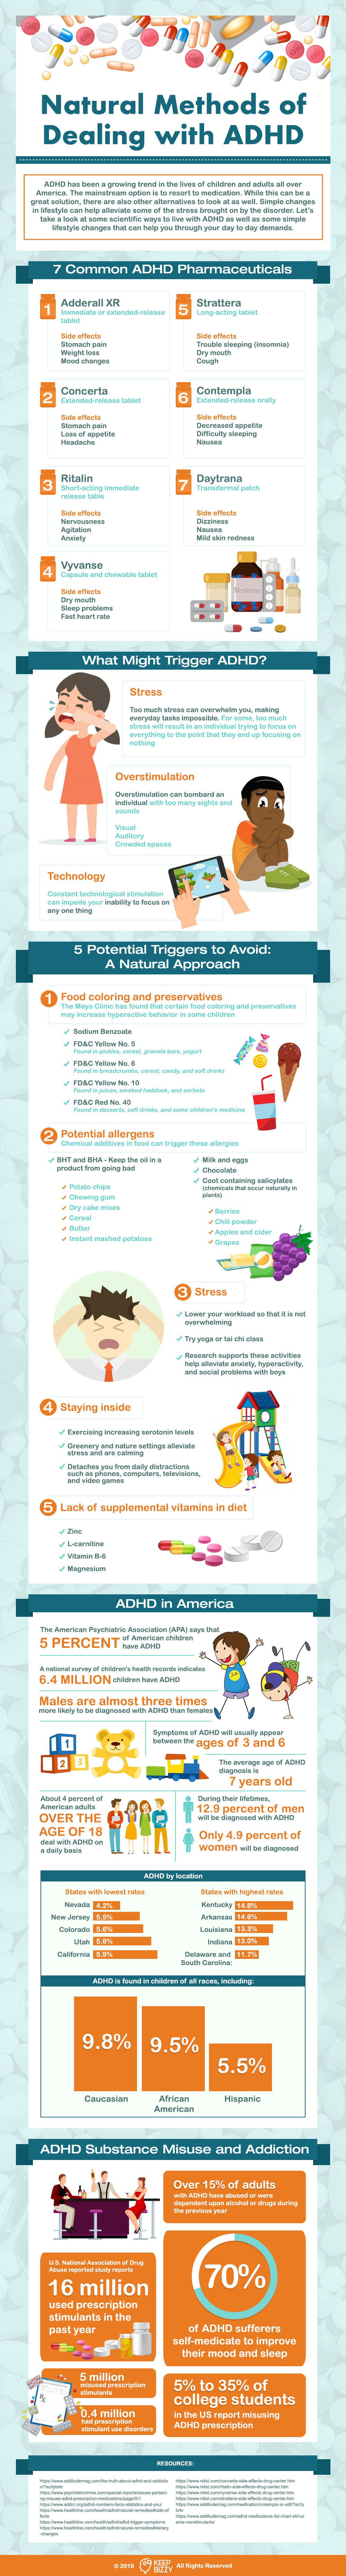 5 Methods to Fight ADHD the Natural Way - Infographic